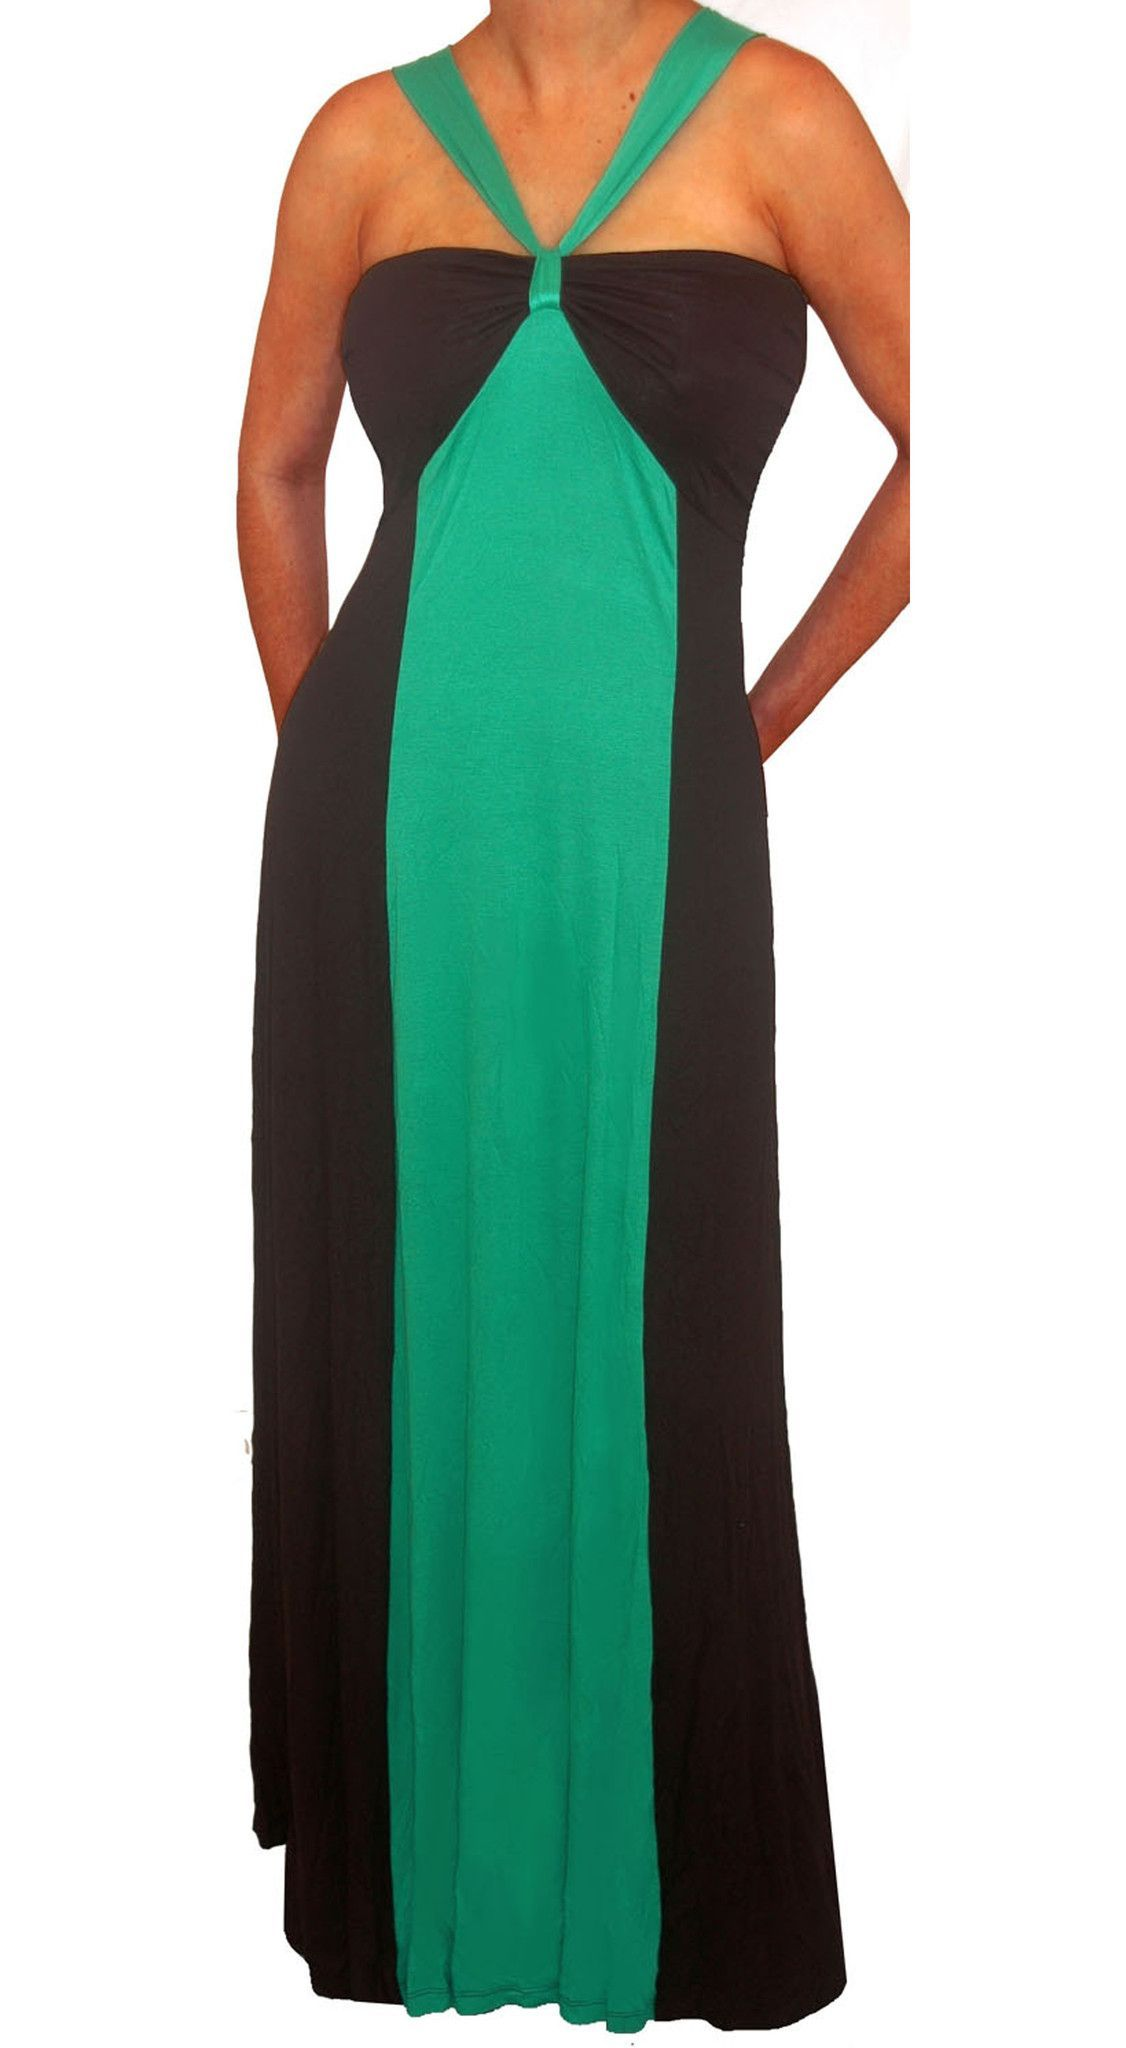 Plus size green black color block halter long maxi dress in